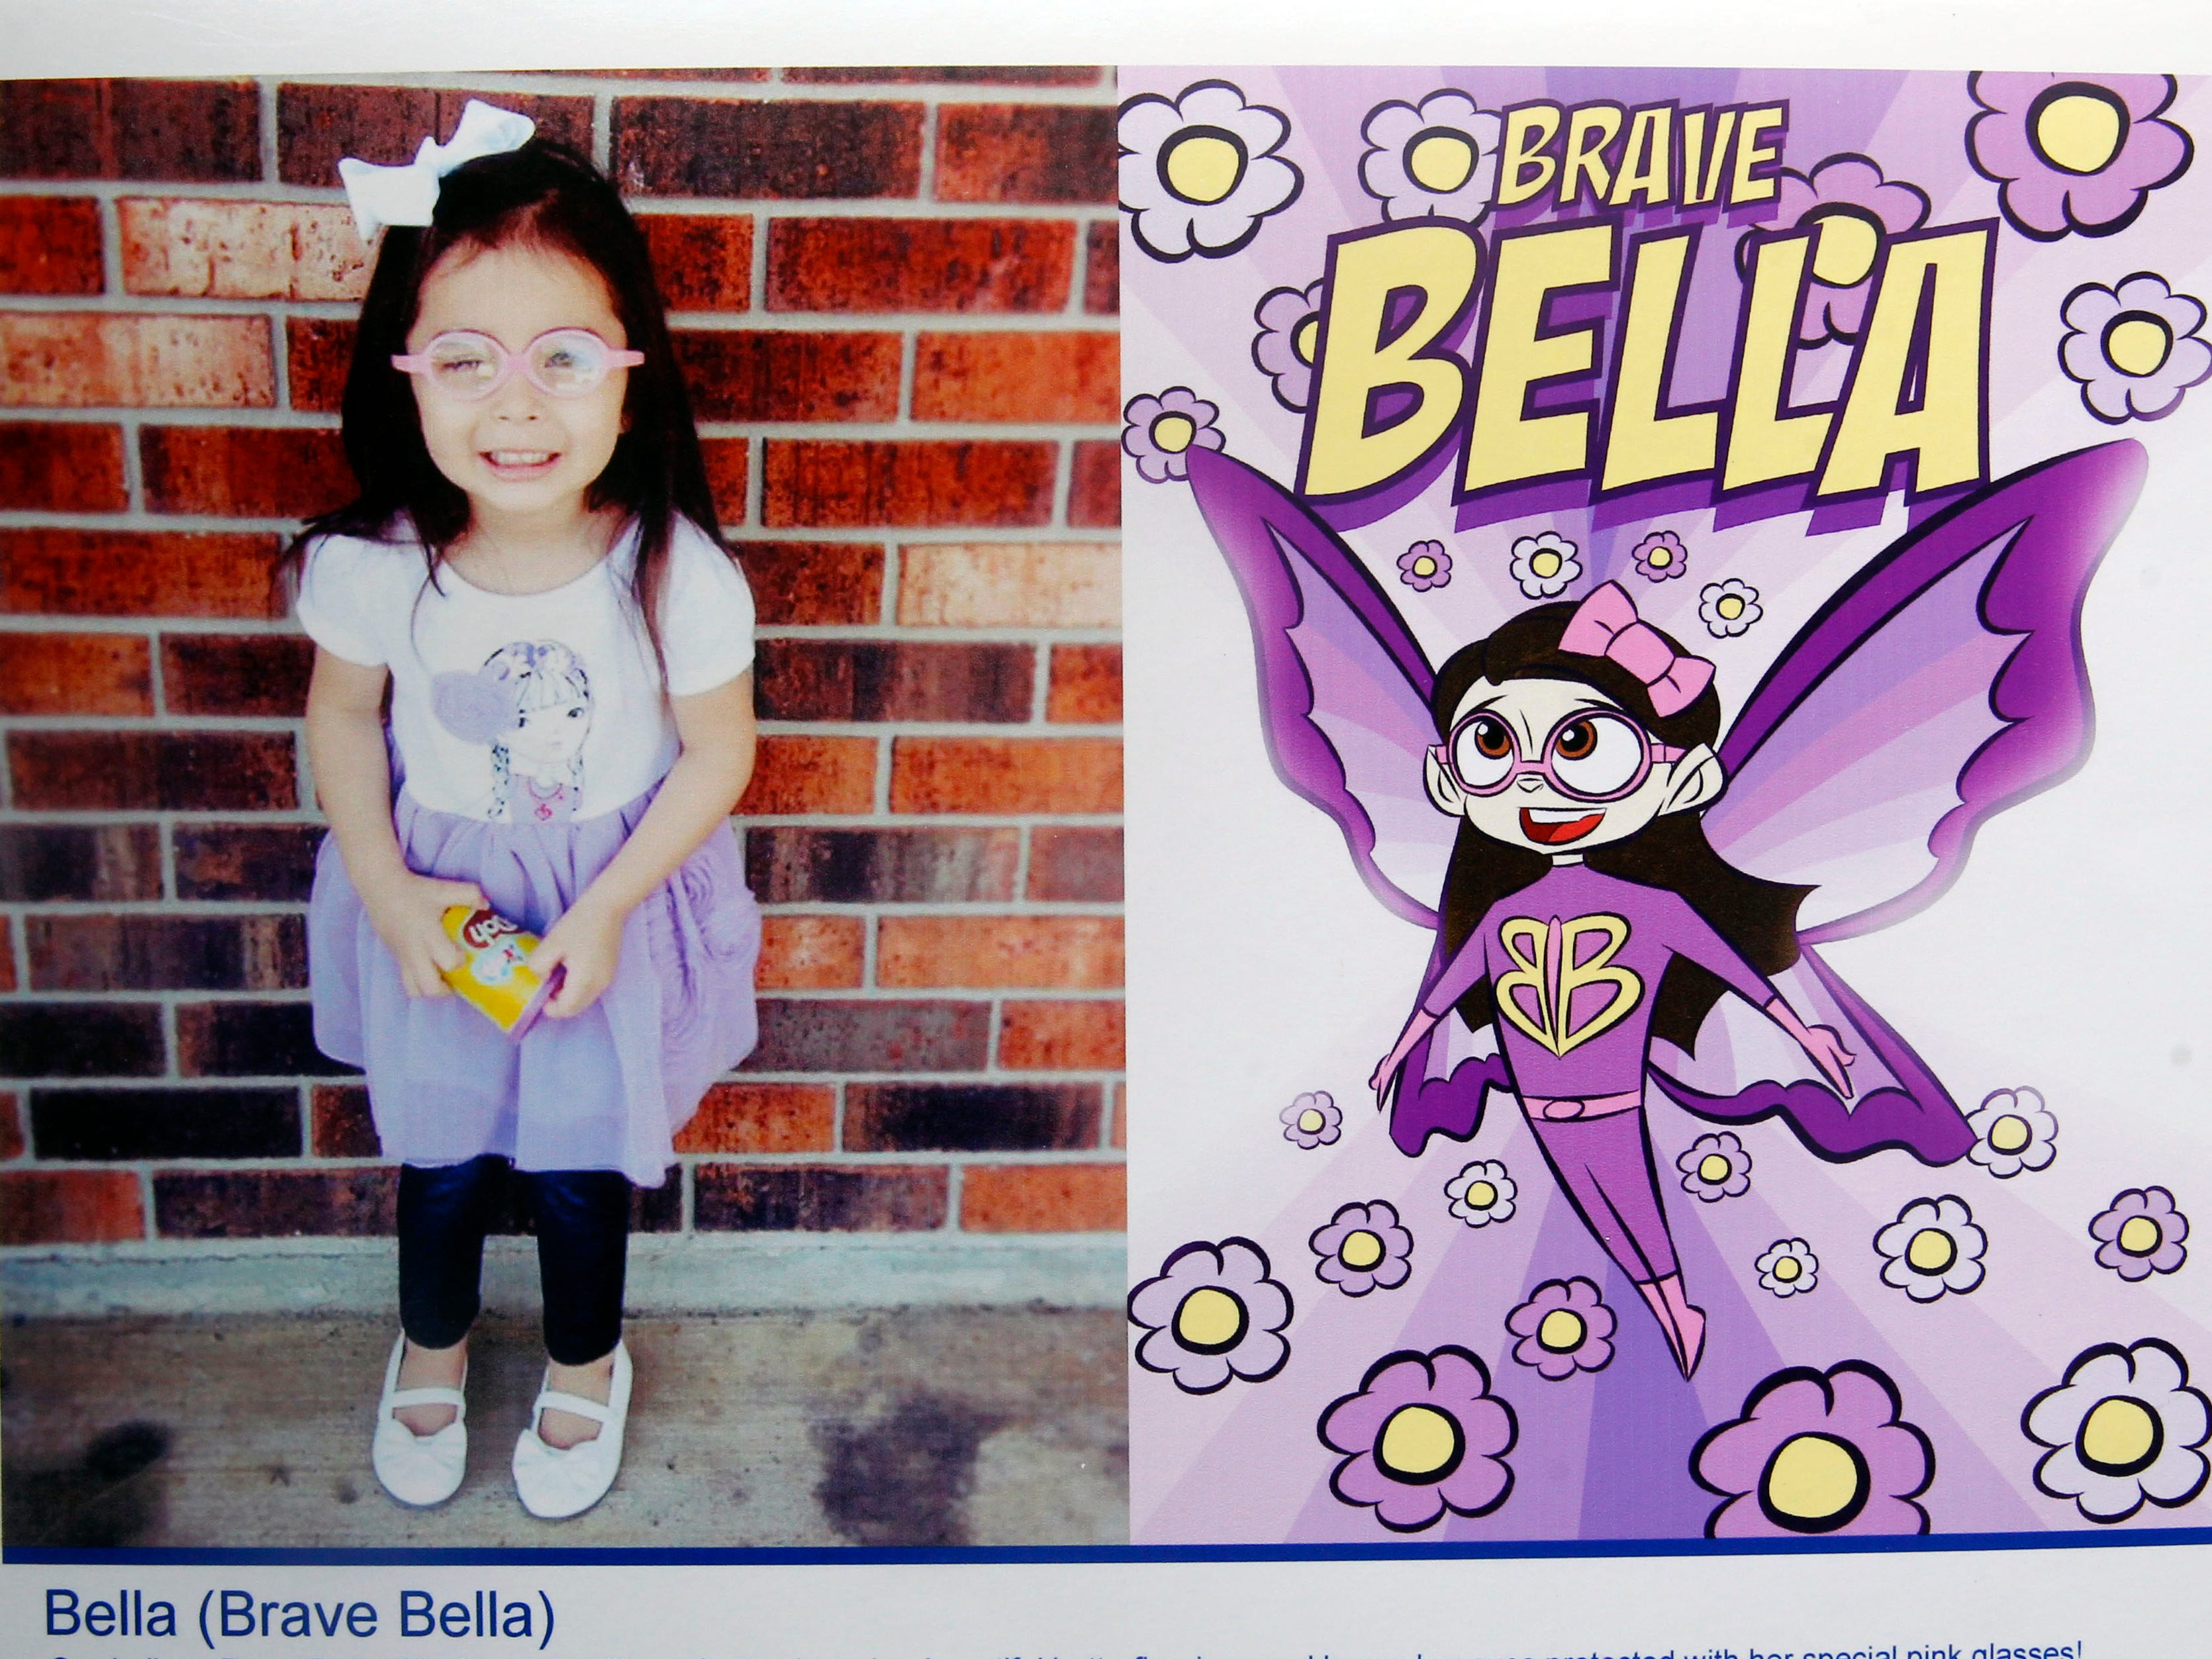 Brave Bella is a superhero identity created by Bryan Dyer, owner of You Are the Hero.